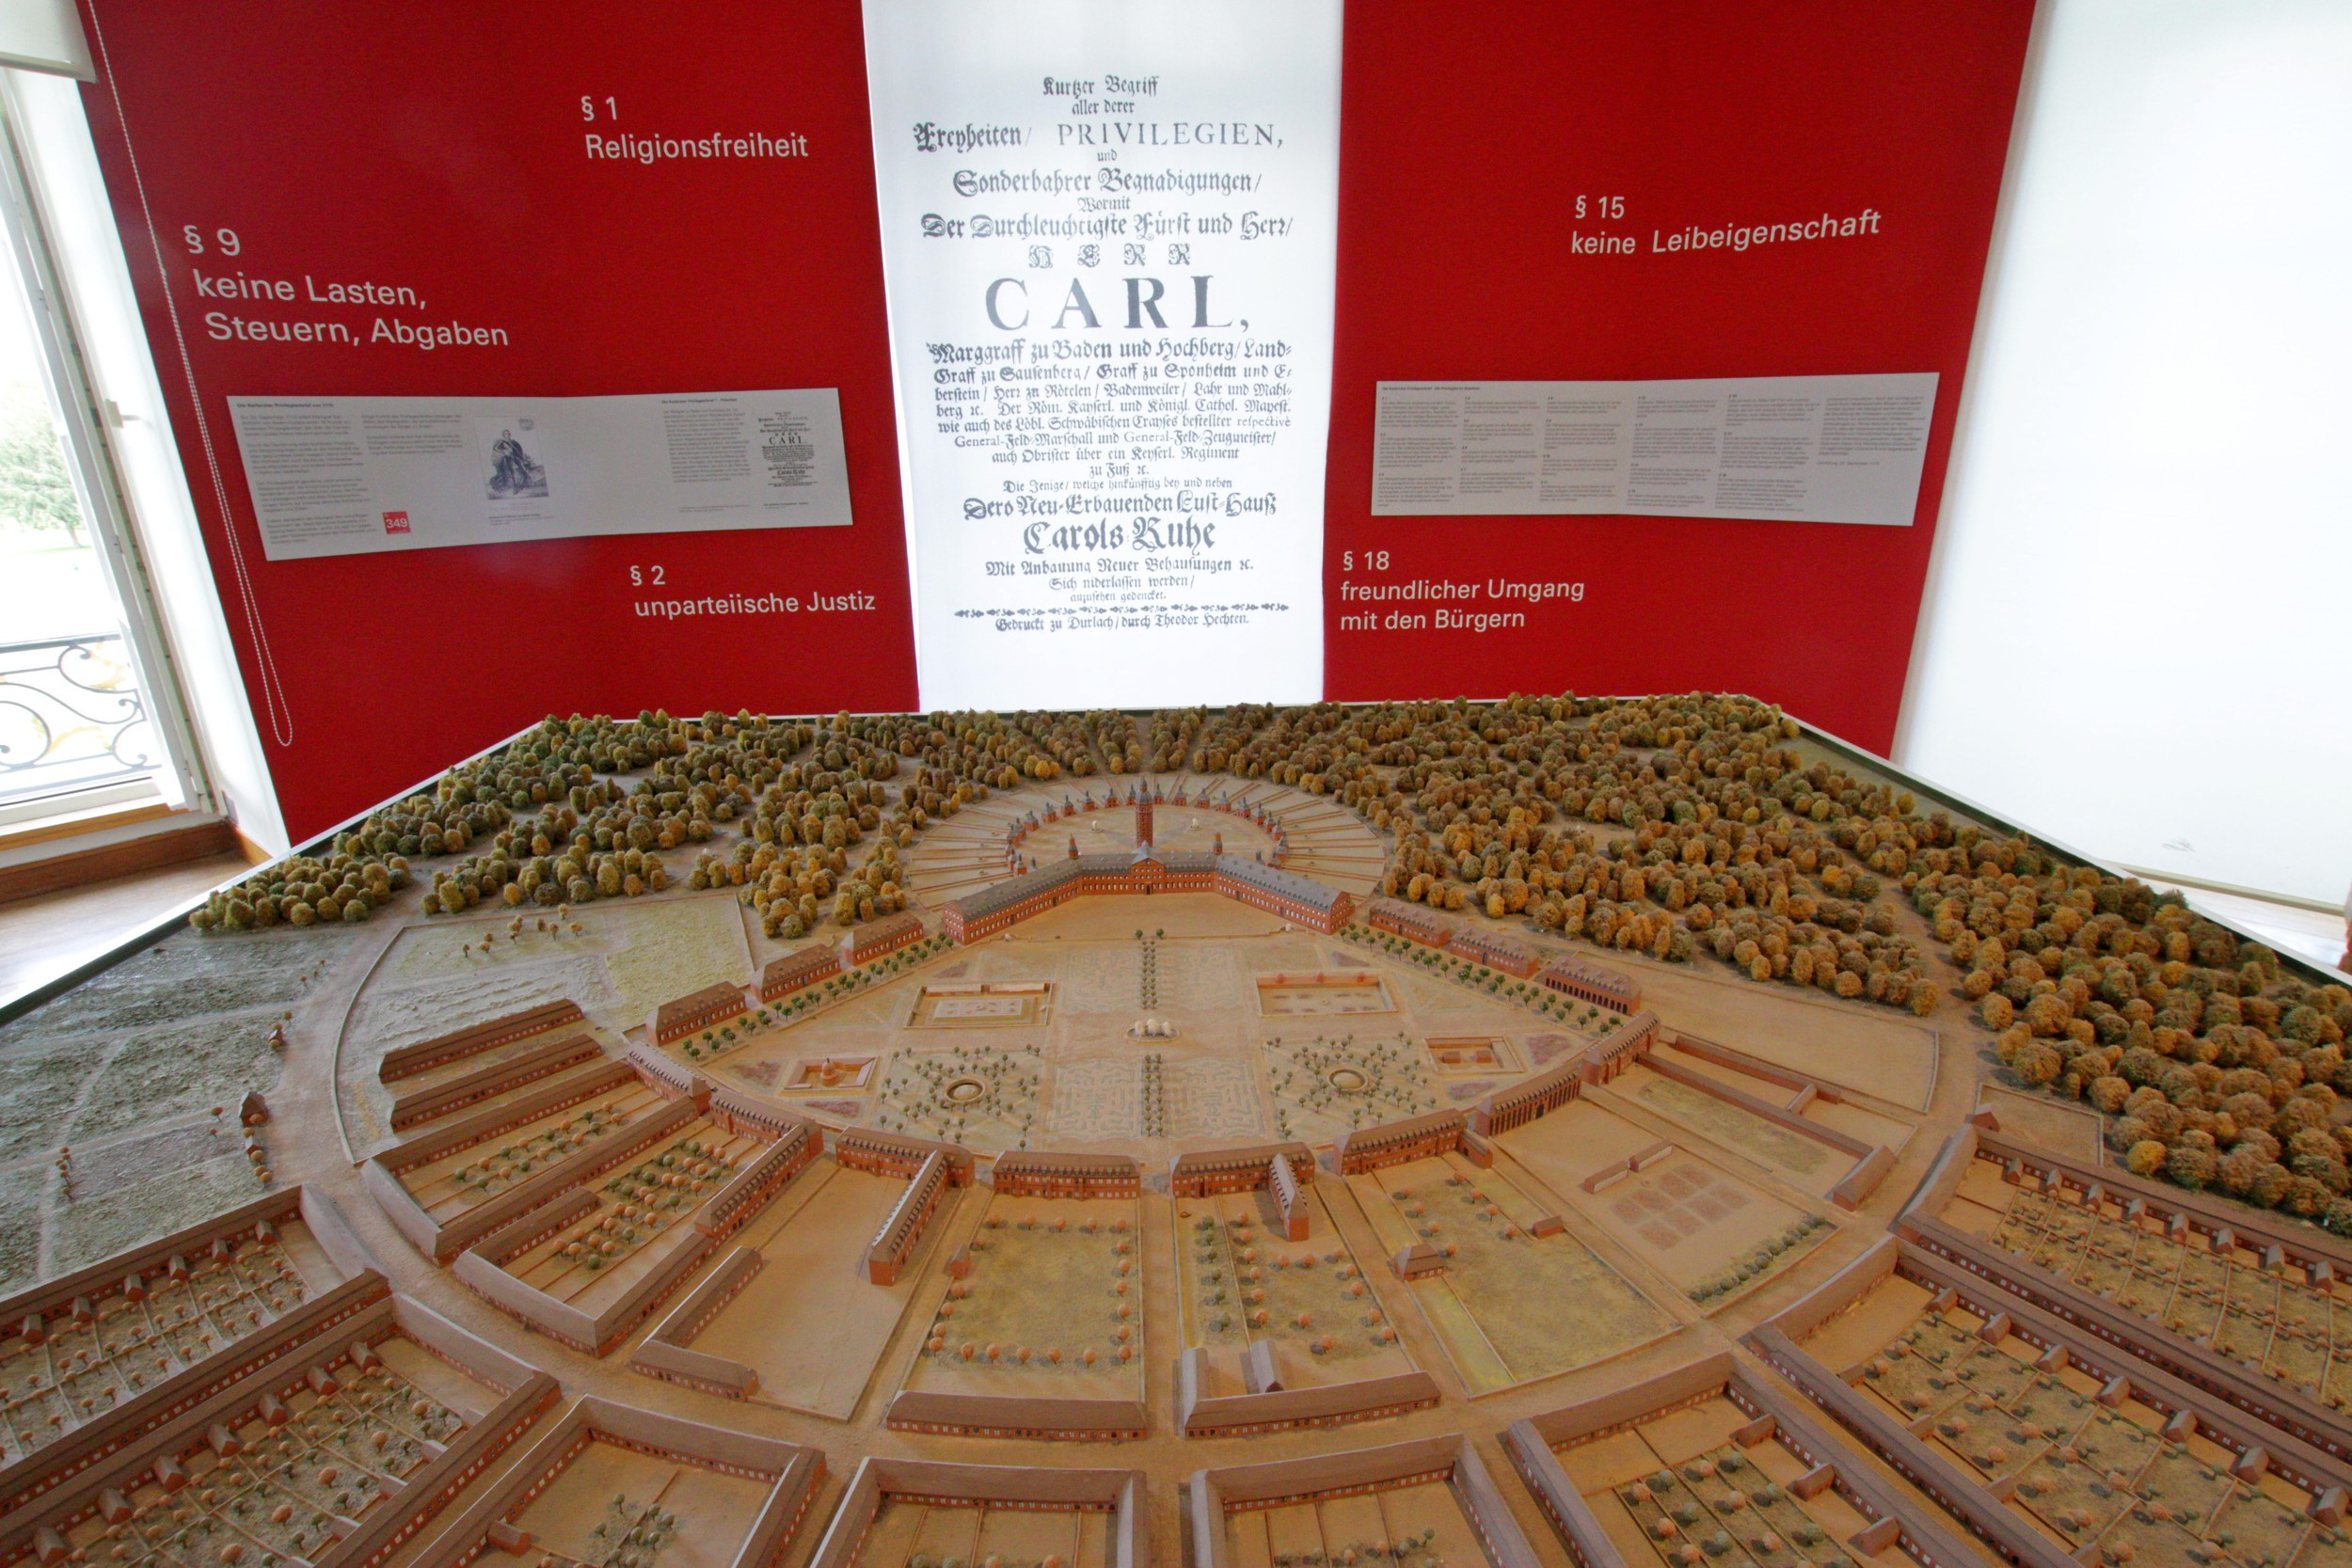 Scale model of the palace and gardens